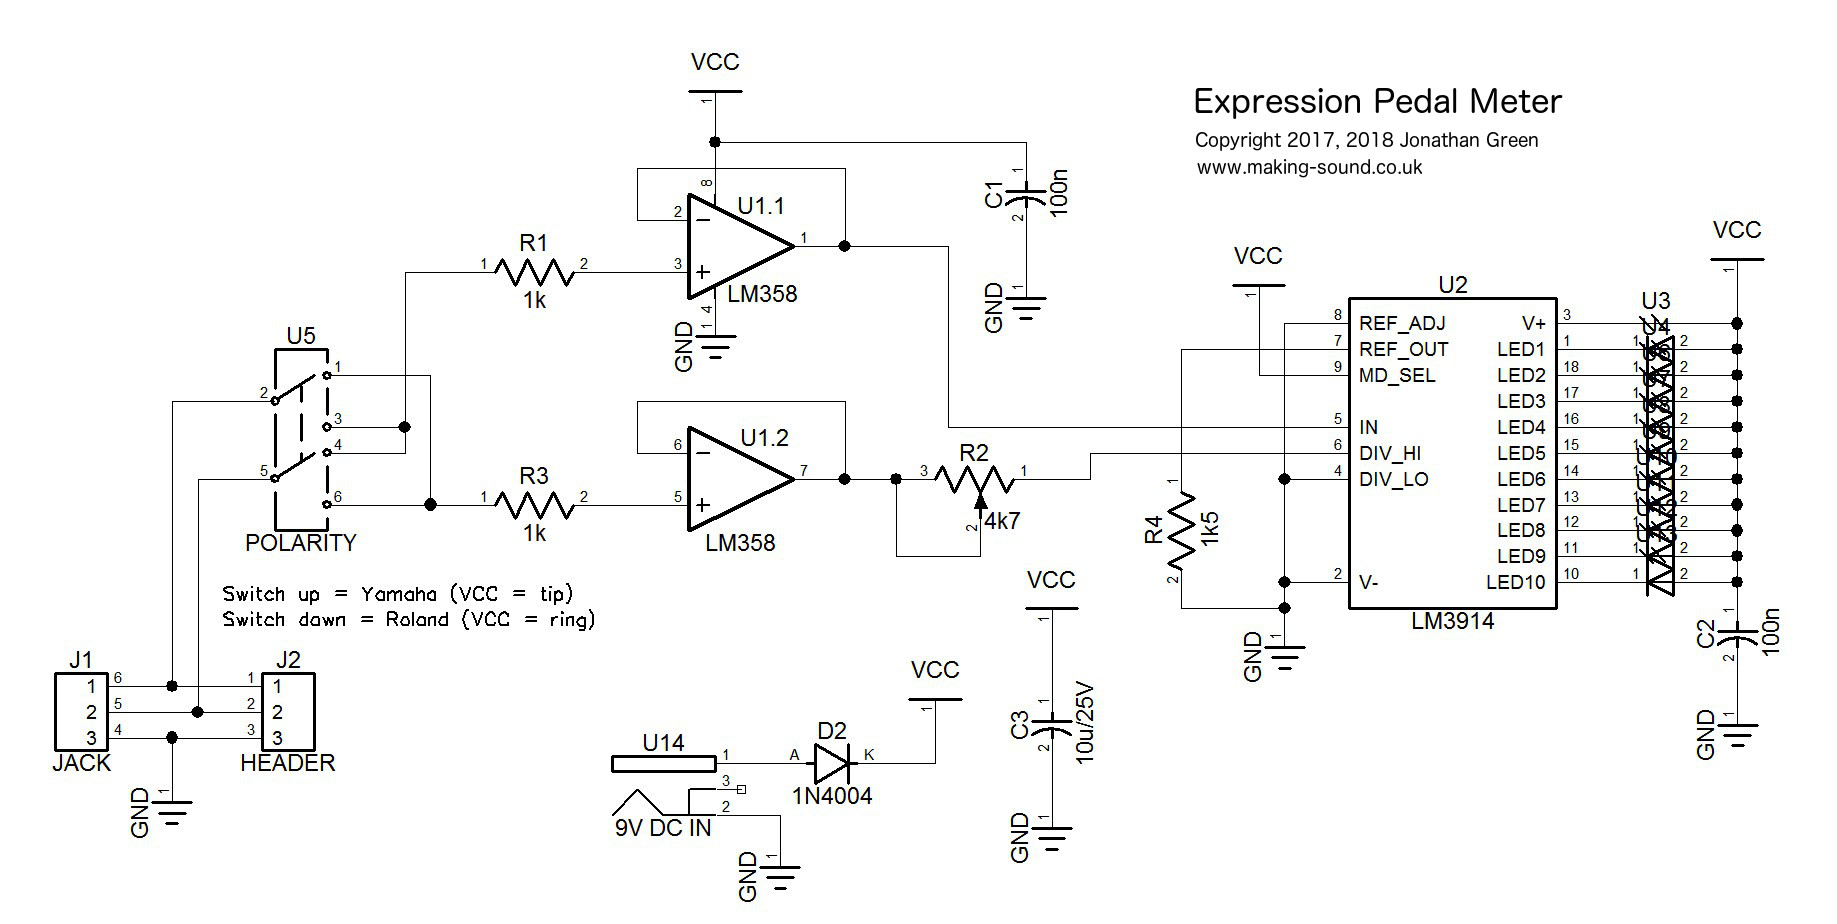 Expression Pedal Meter